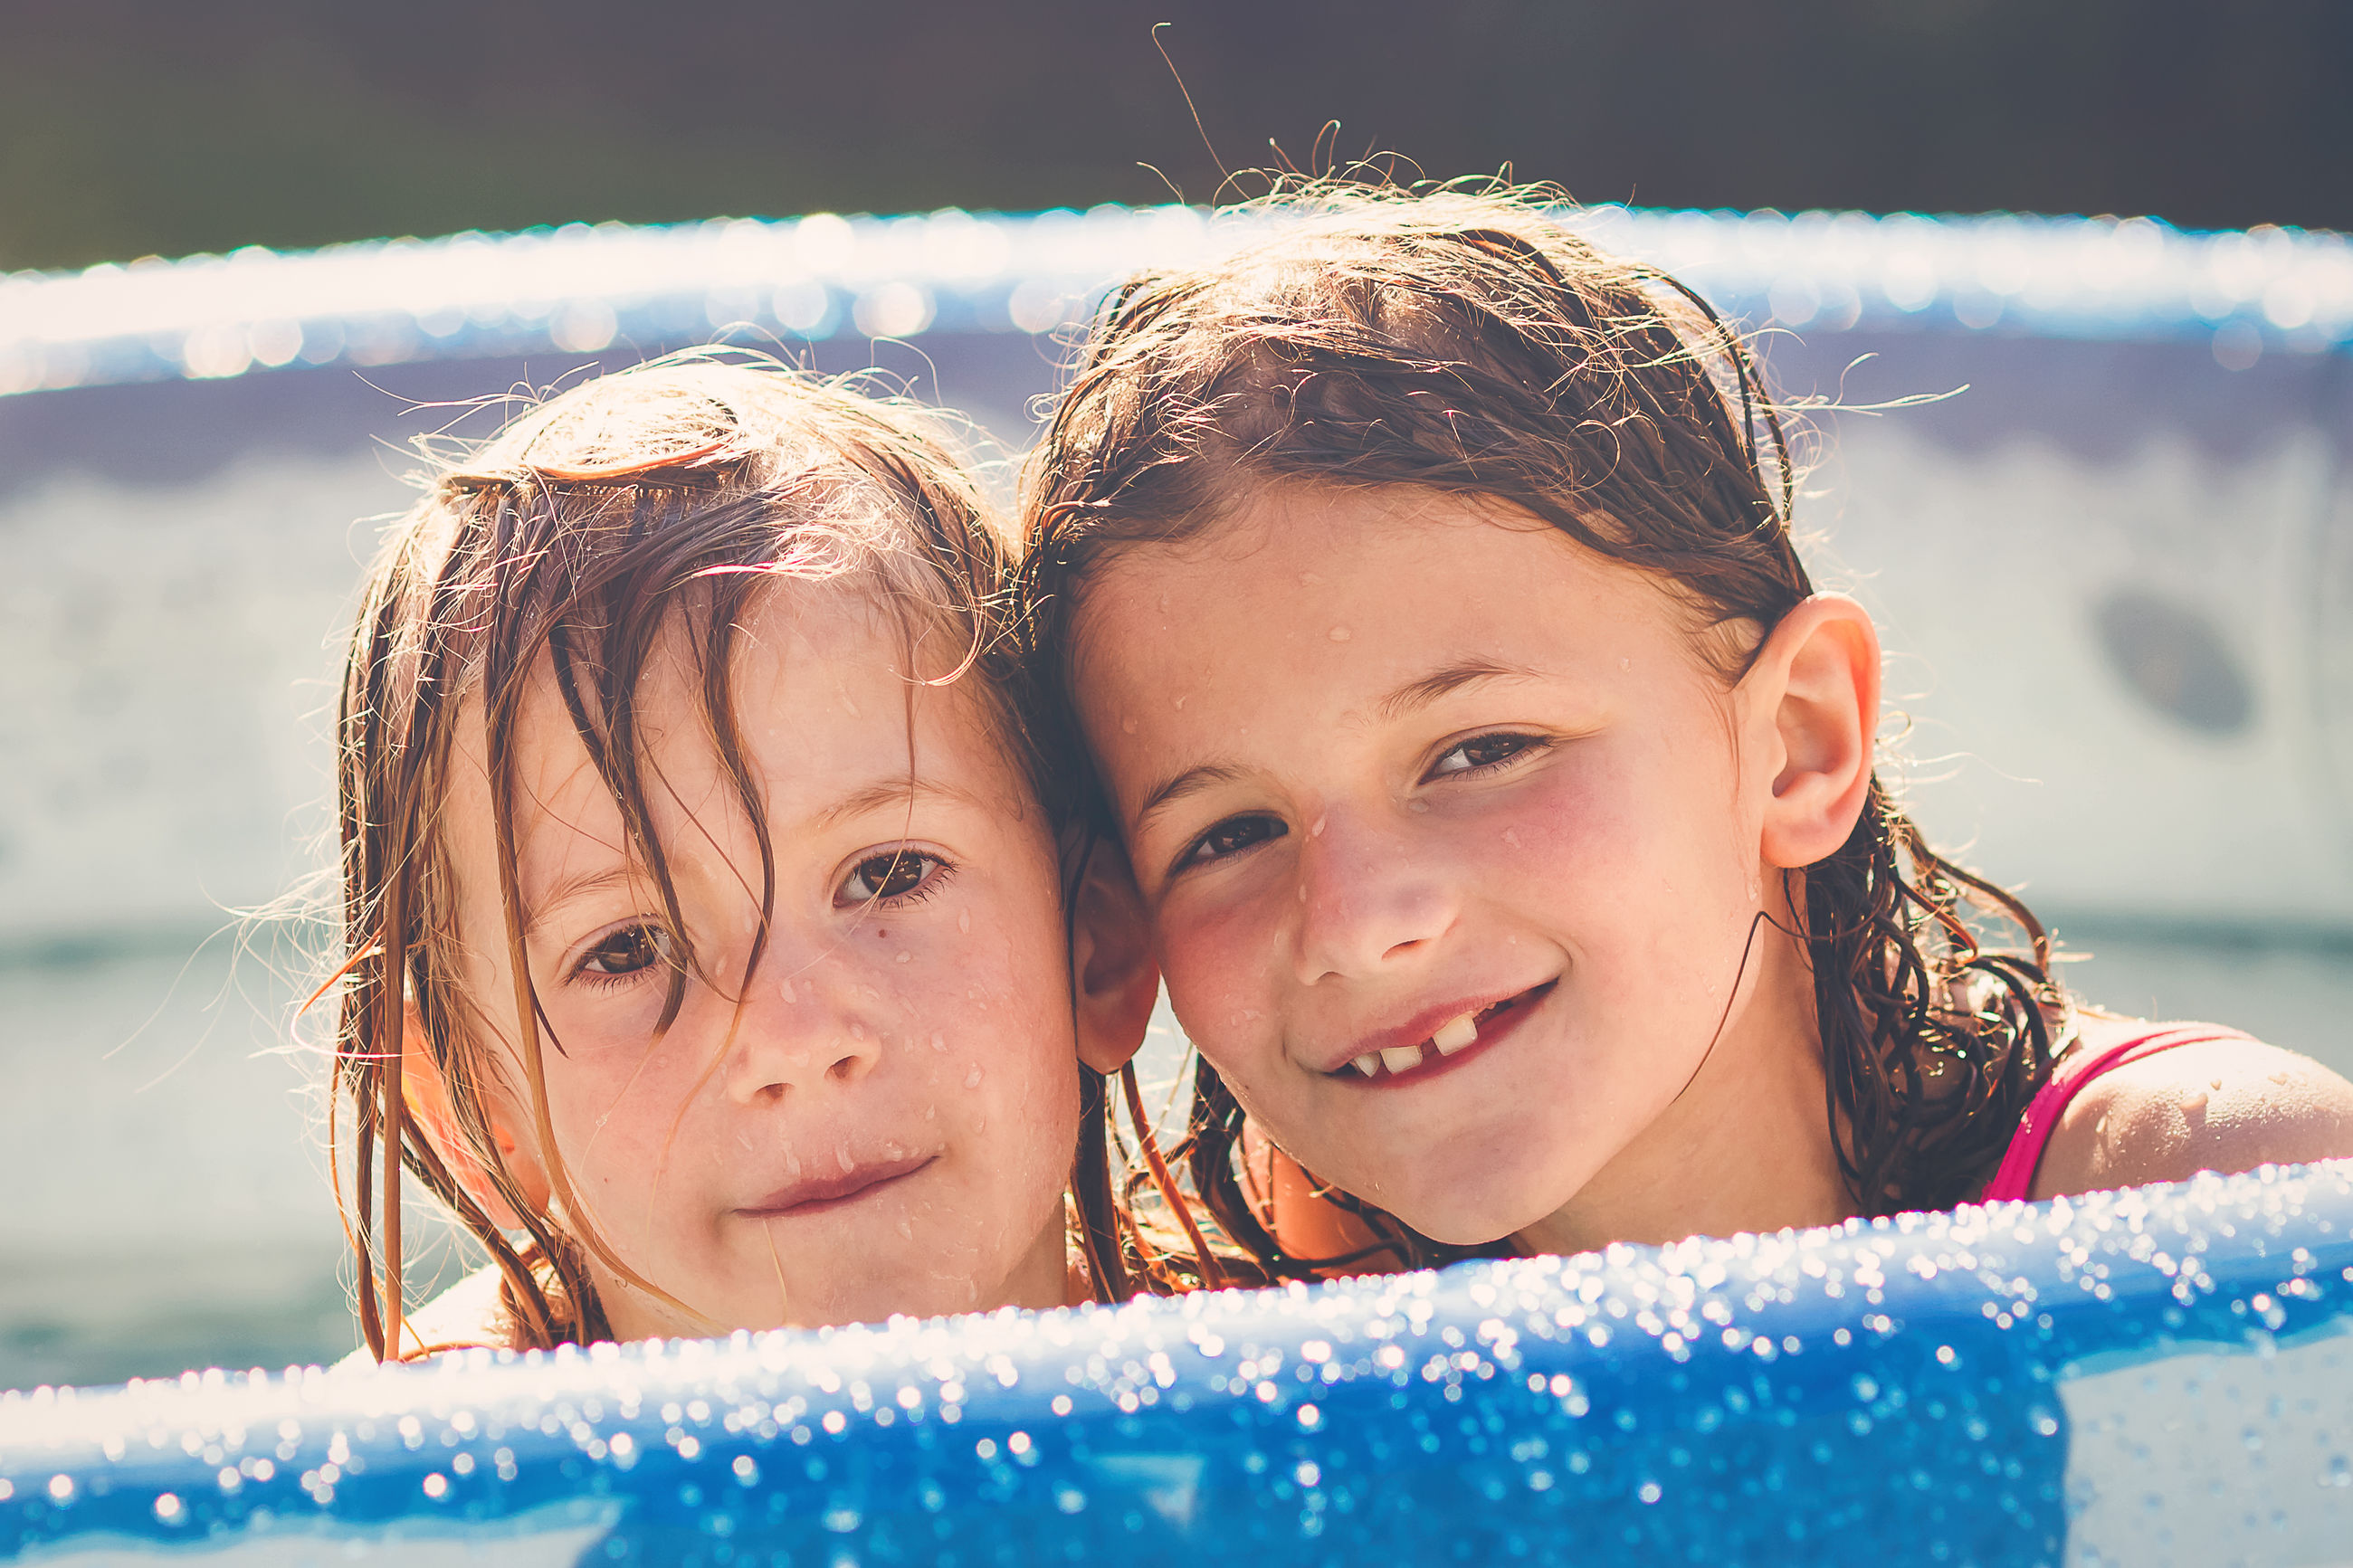 Close-up portrait of cute siblings in wading pool